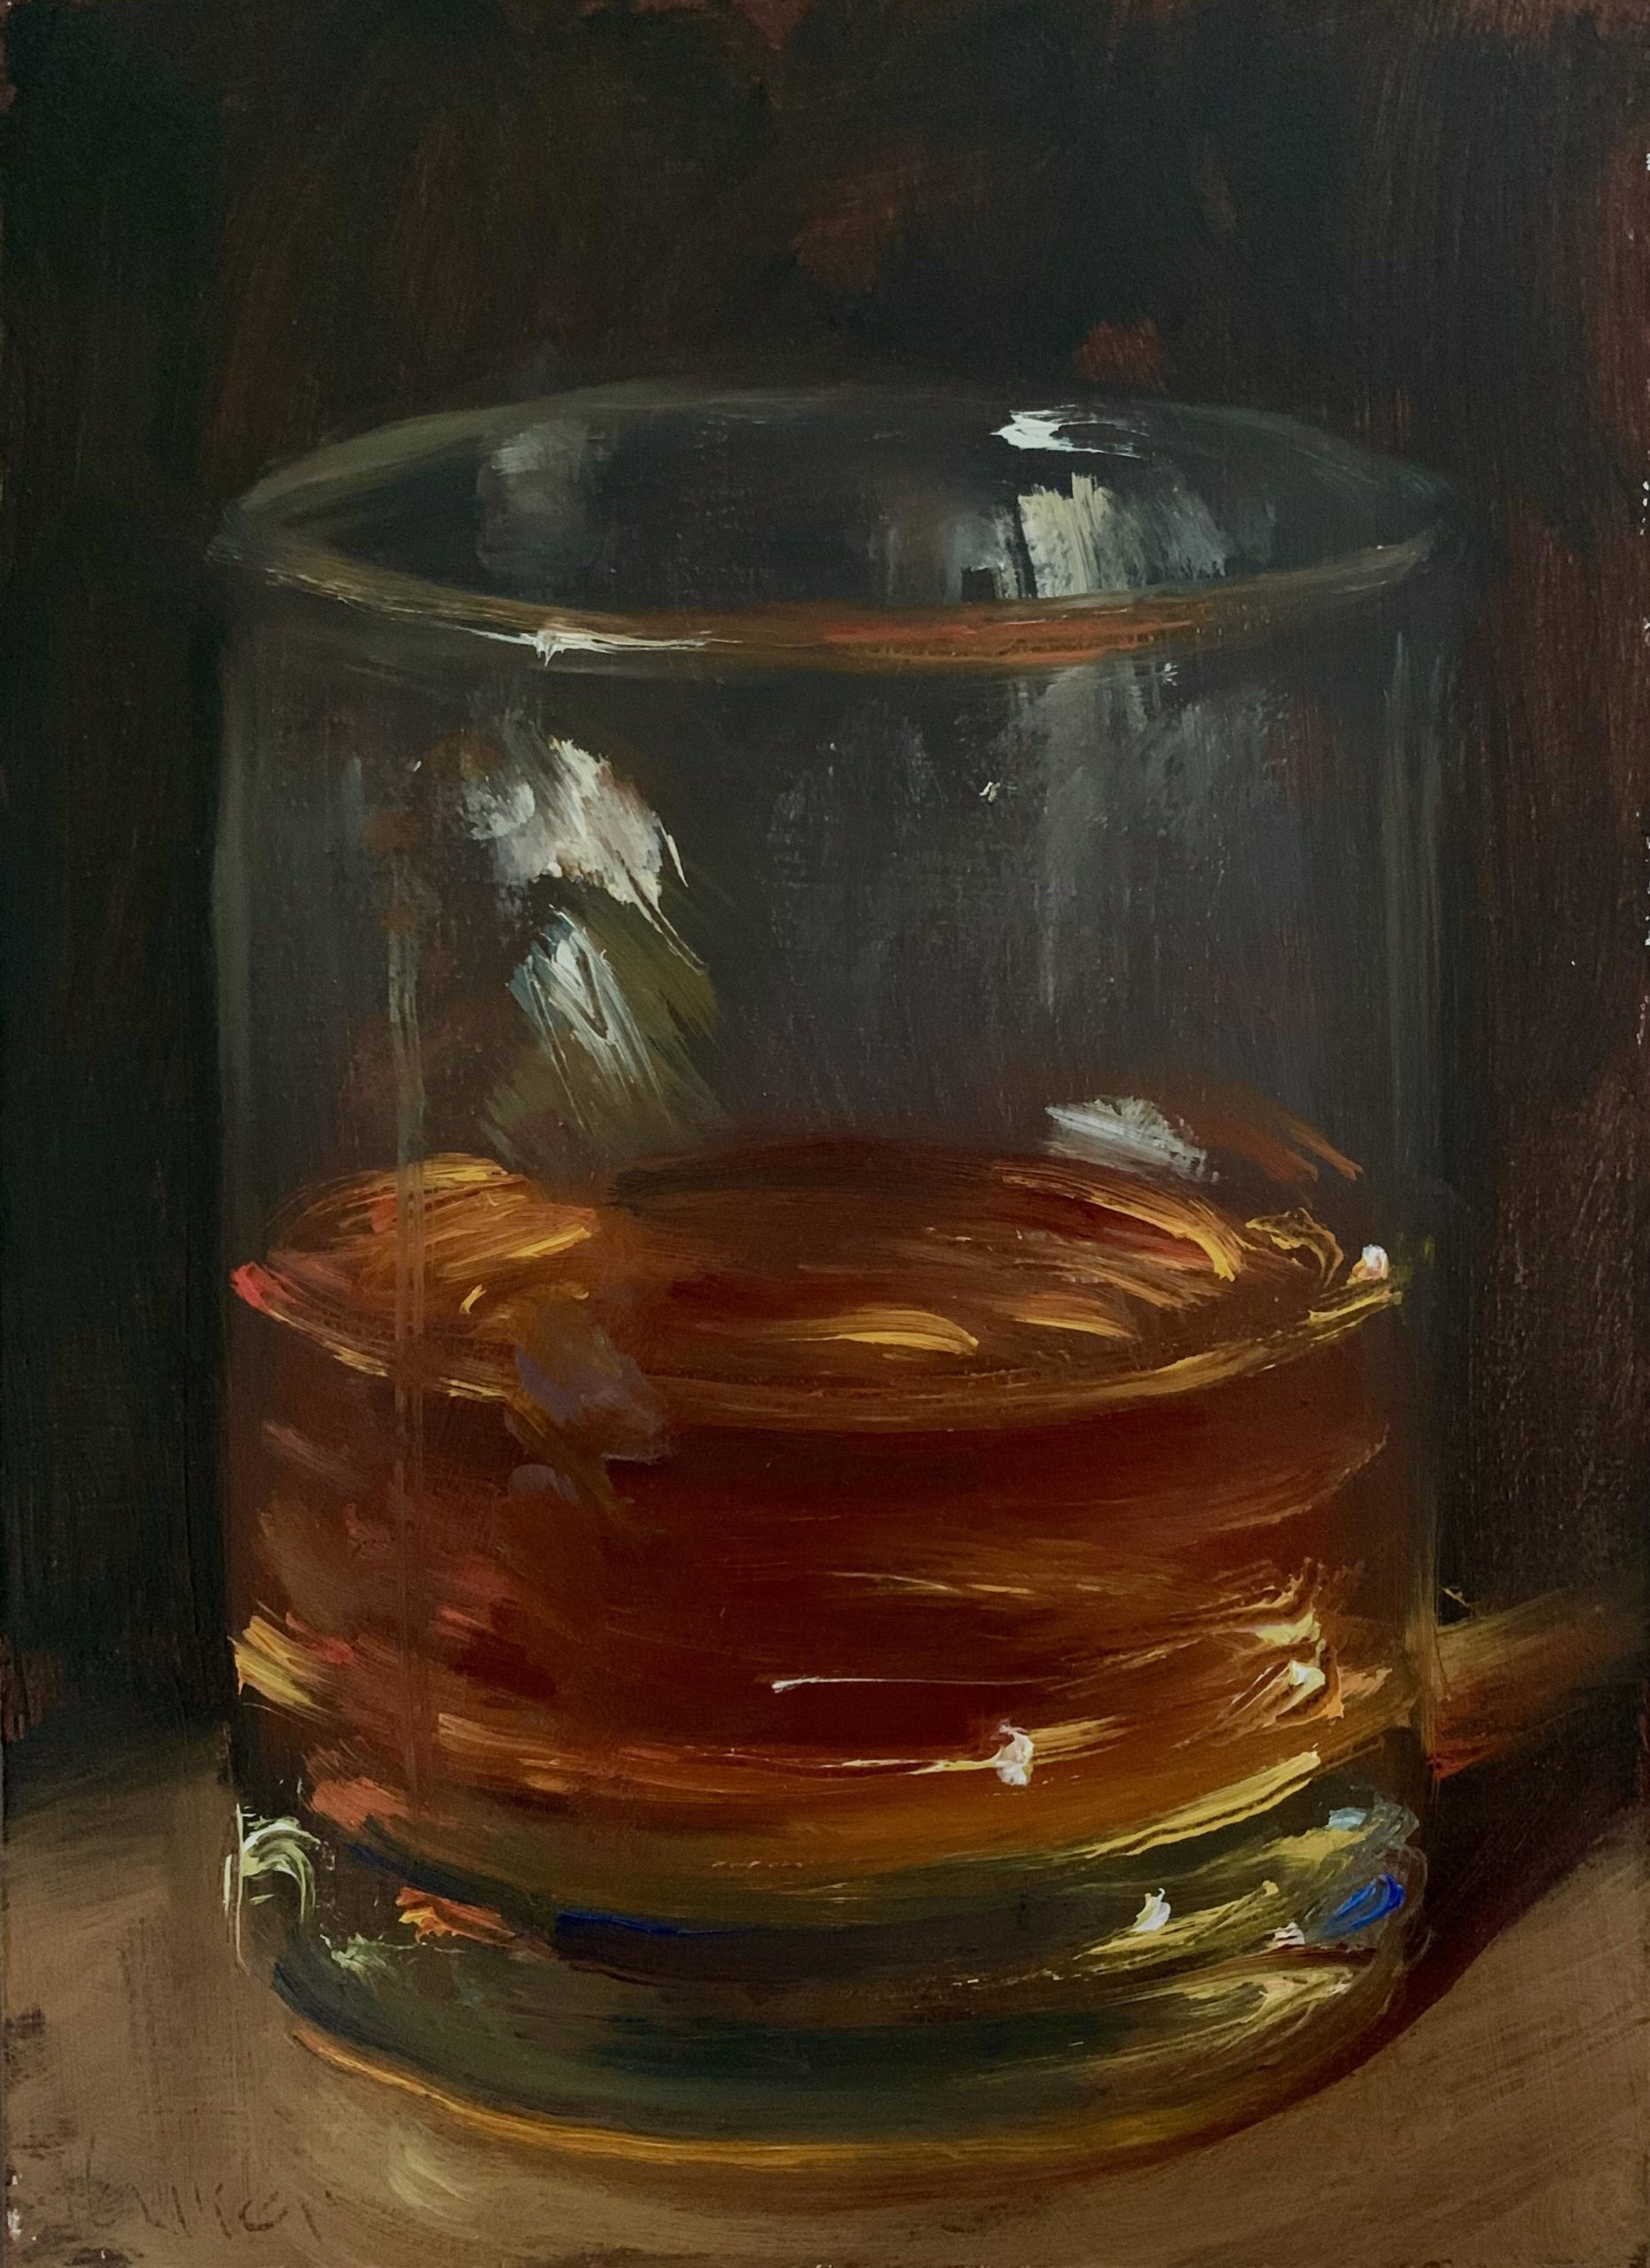 My oil painting of a Glass of Whisky